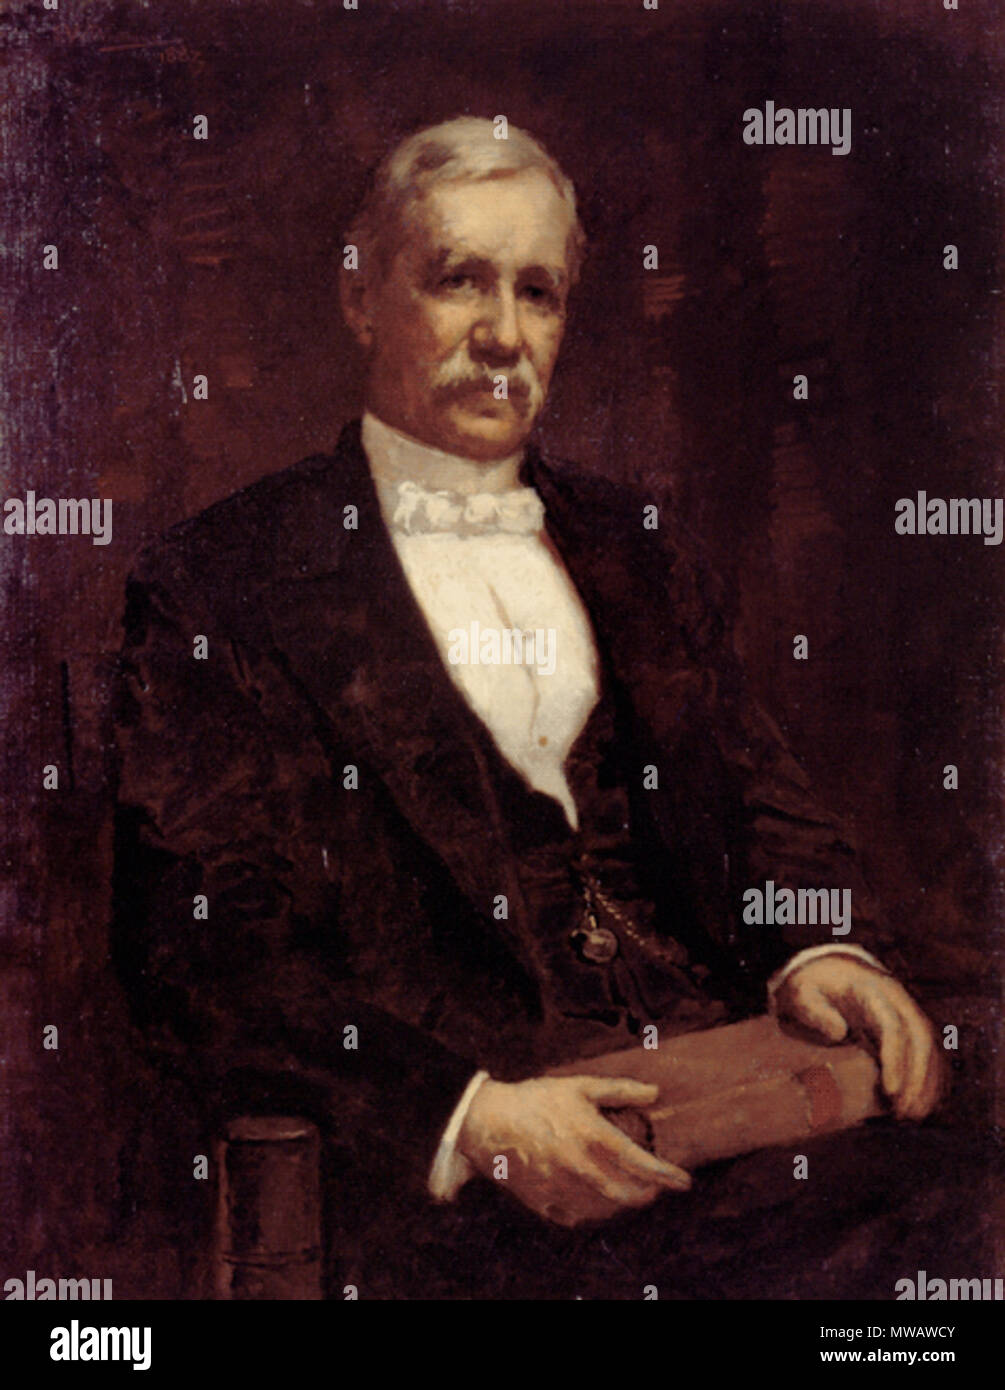 . Portrait of Charles Gideon Putnam, MD. By Edwin T. Billings (1824-1893) Oil on canvas. H. 30 ¼, W 25 ½ in. between 1865 and 1875.   Edwin Tryon Billings (1824–1893)  Alternative names Edwin T. Billings; E. T. Billings  Description painter American artist  Date of birth/death 20 November 1824 1893  Authority control  : Q5346880 VIAF:95965257 ULAN:500043394 RKD:103612 123 Charles Gideon Putnam MD ca1860s by Edwin T Billings HistoricNewEngland - Stock Image